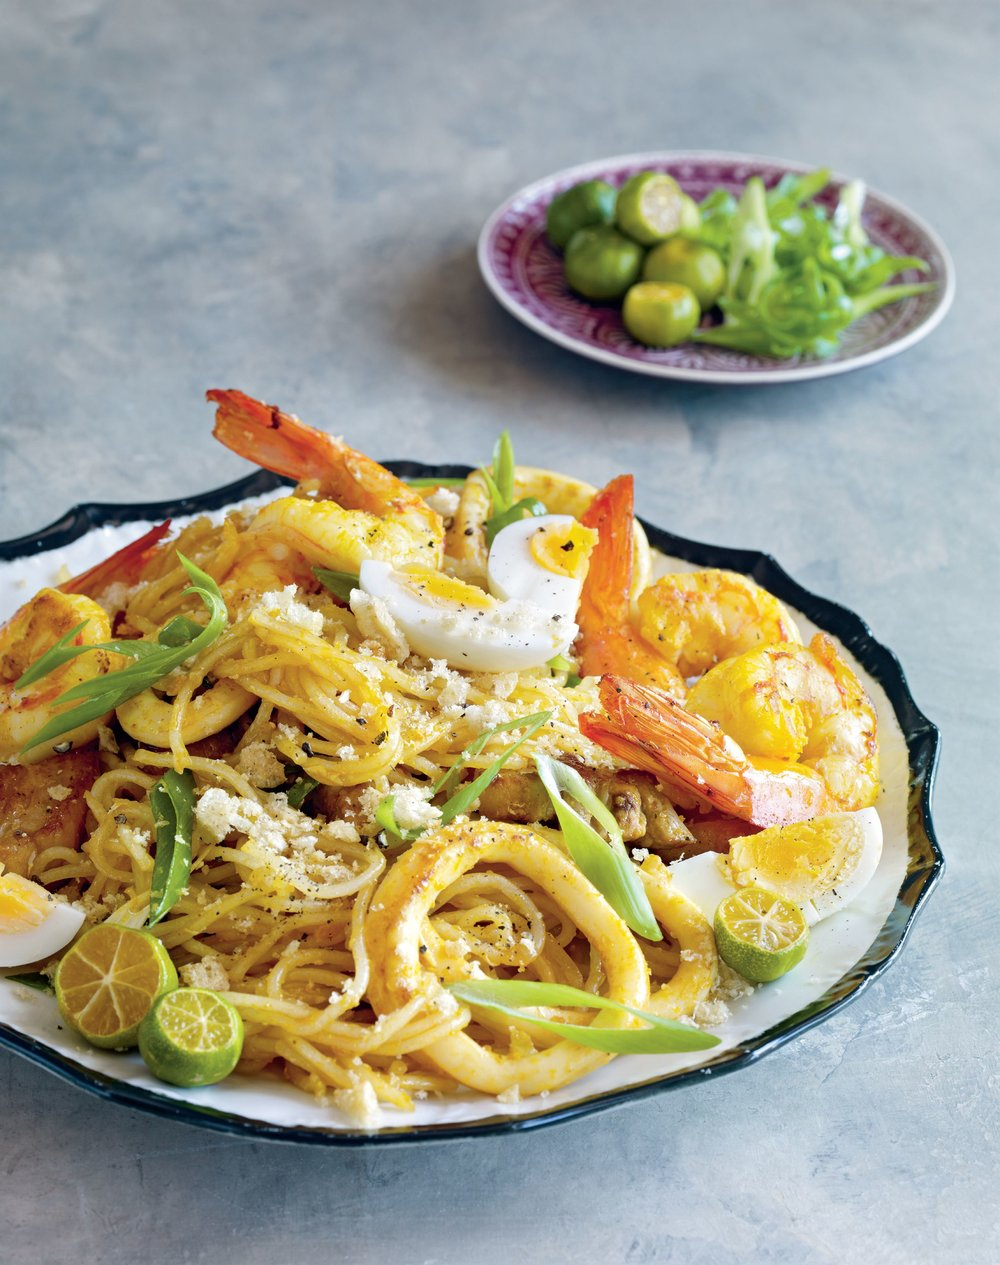 Pancit palabok | 7000 Islands cookbook